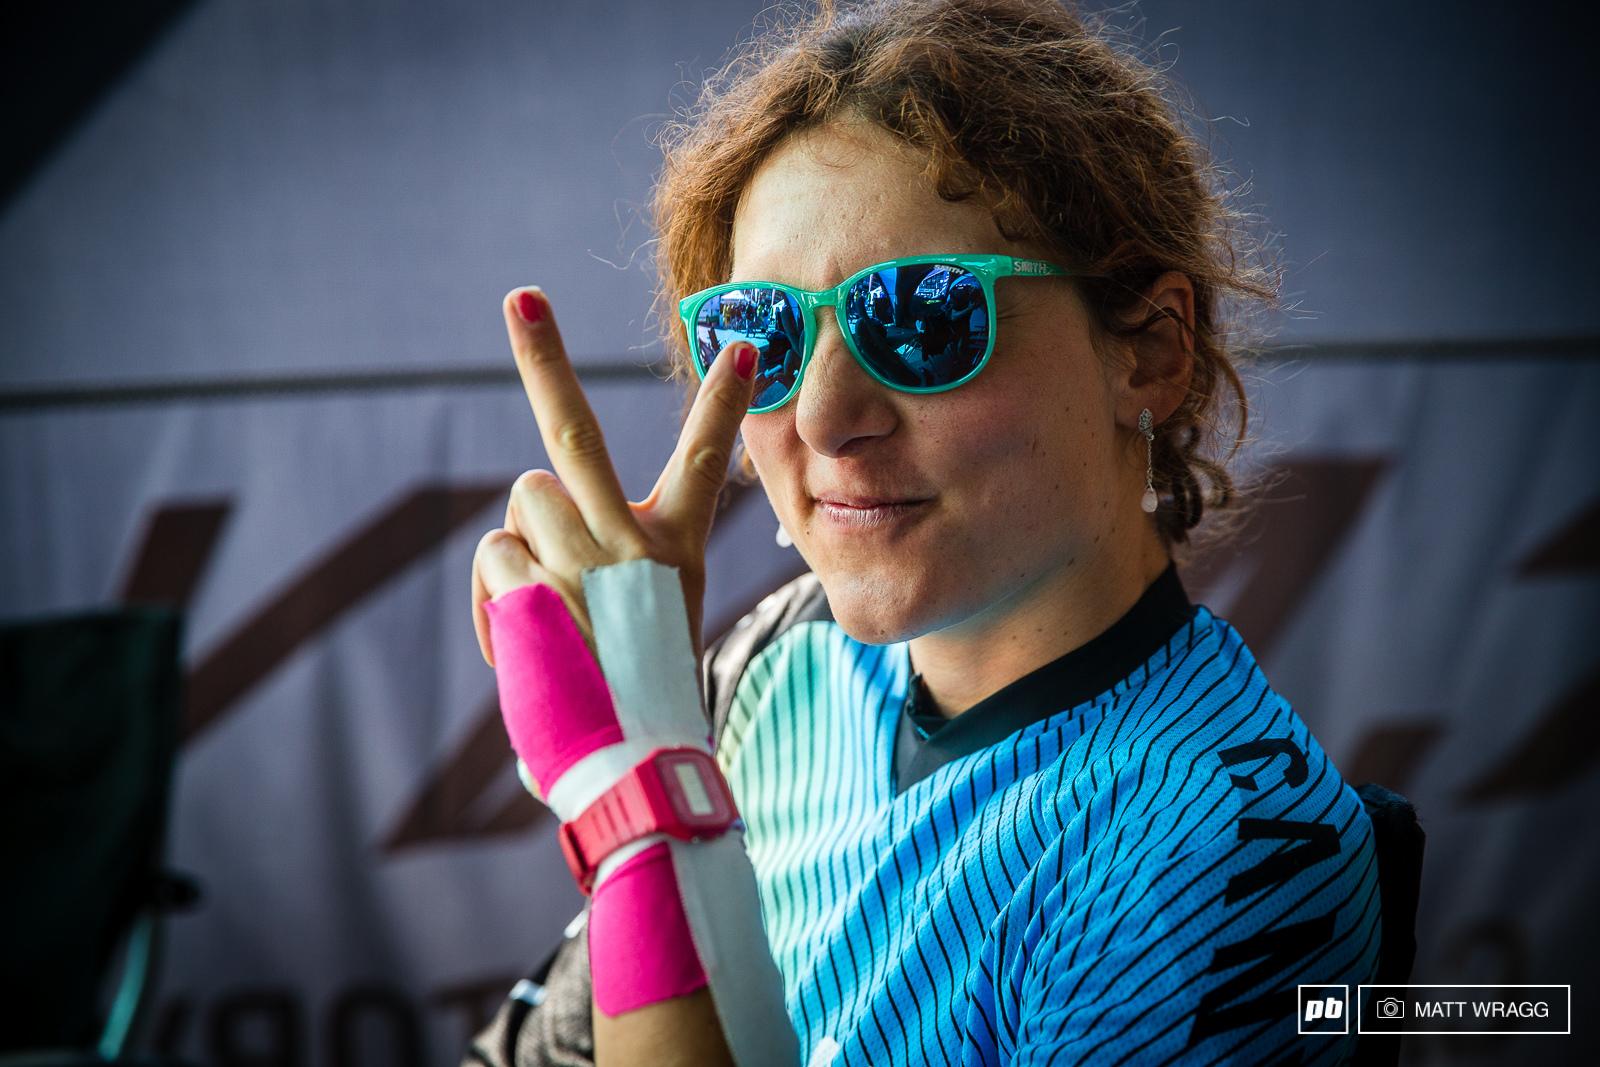 Ines Thoma has some slightly sore ligaments in her wrist but she was feeling good to race this morning.